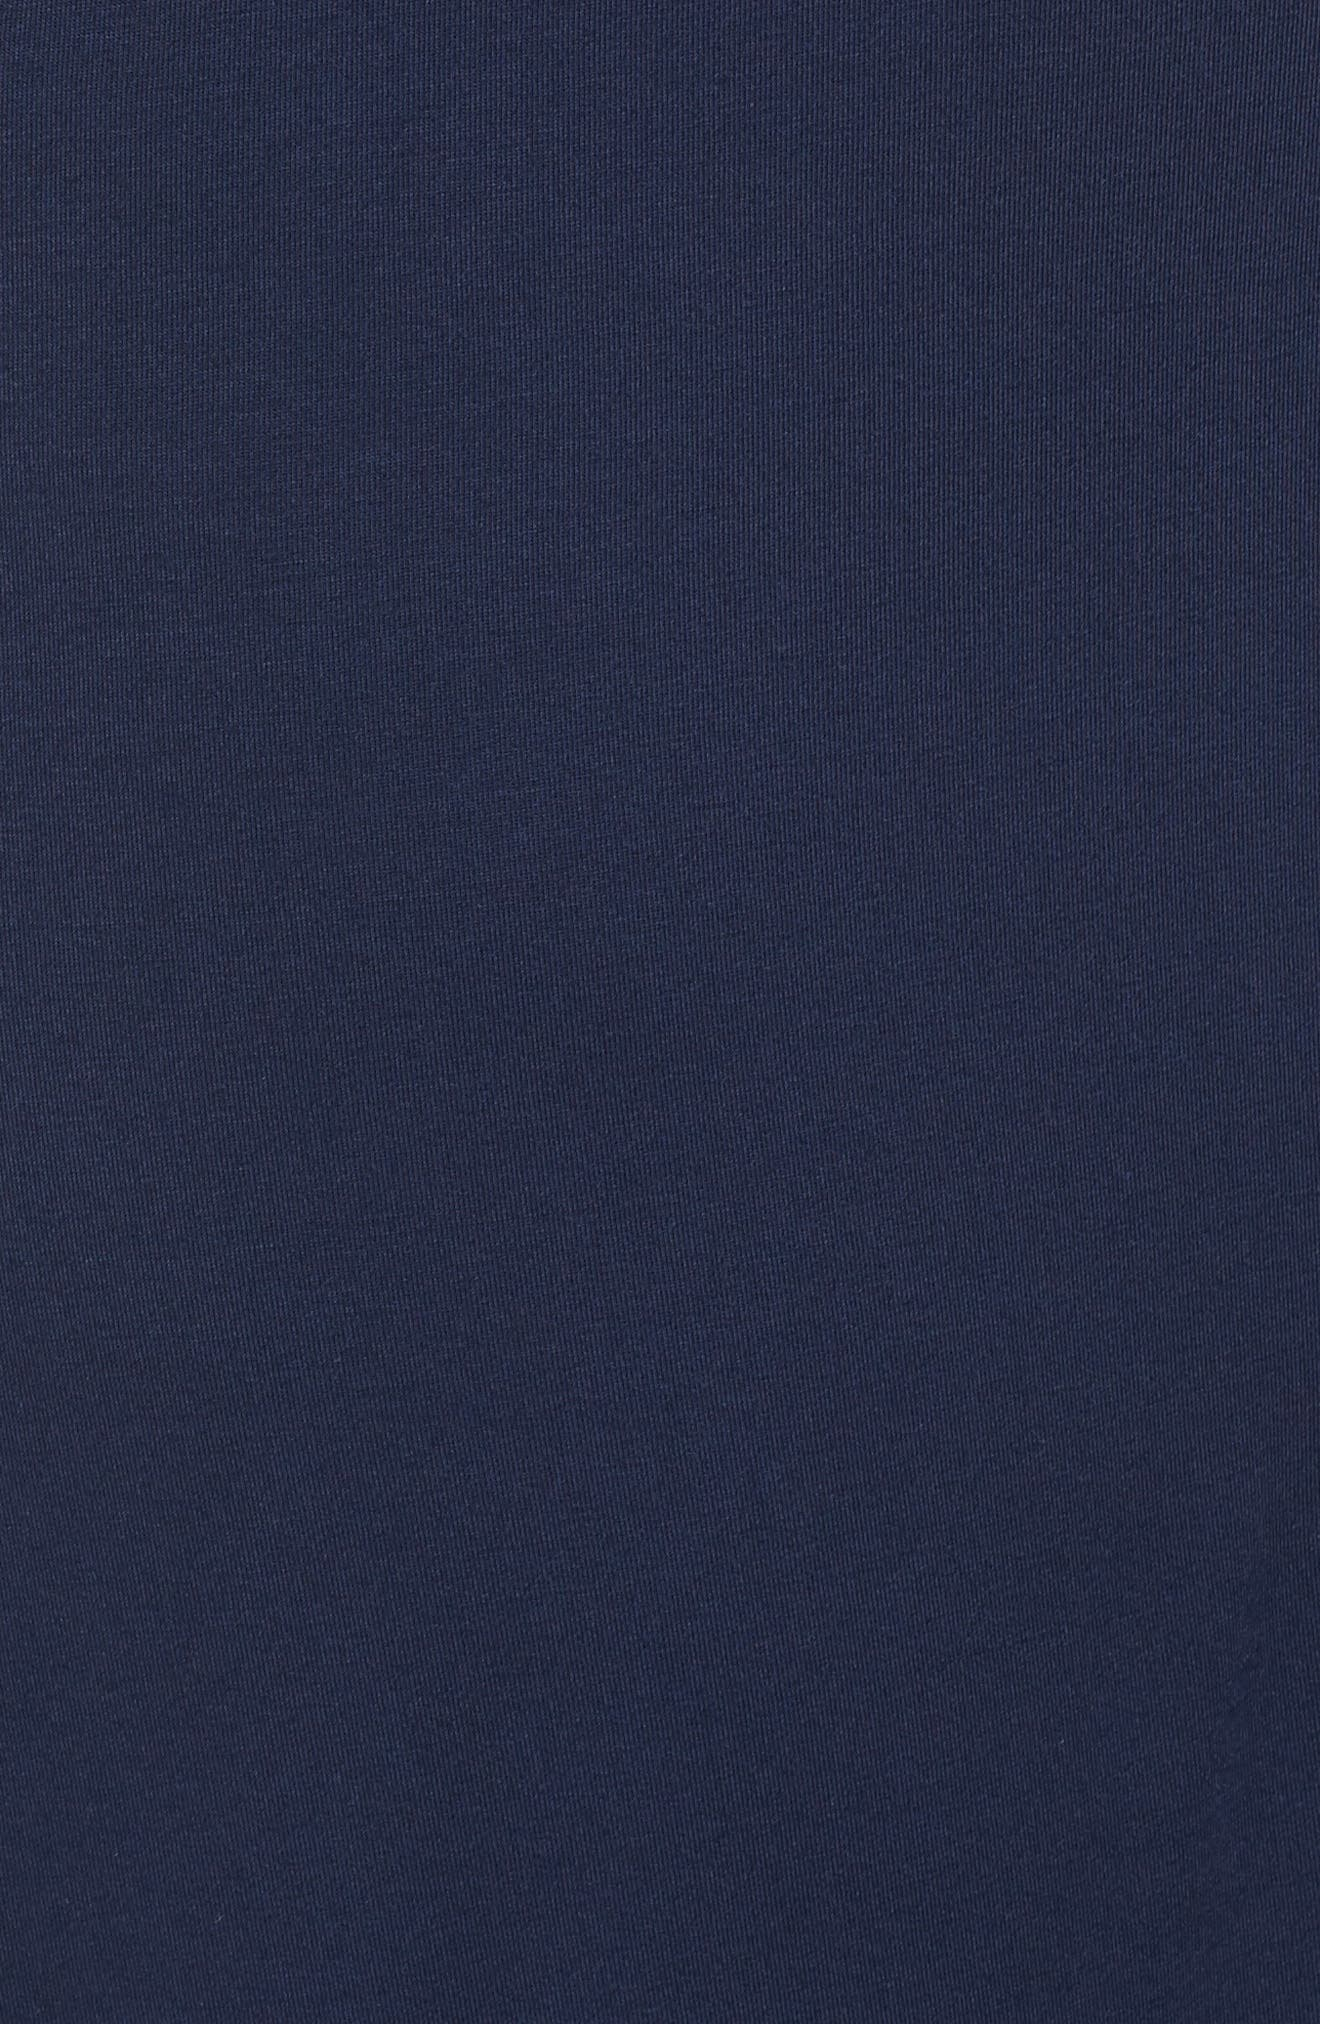 LAUREN RALPH LAUREN, Long Nightshirt, Alternate thumbnail 5, color, SPRING NAVY